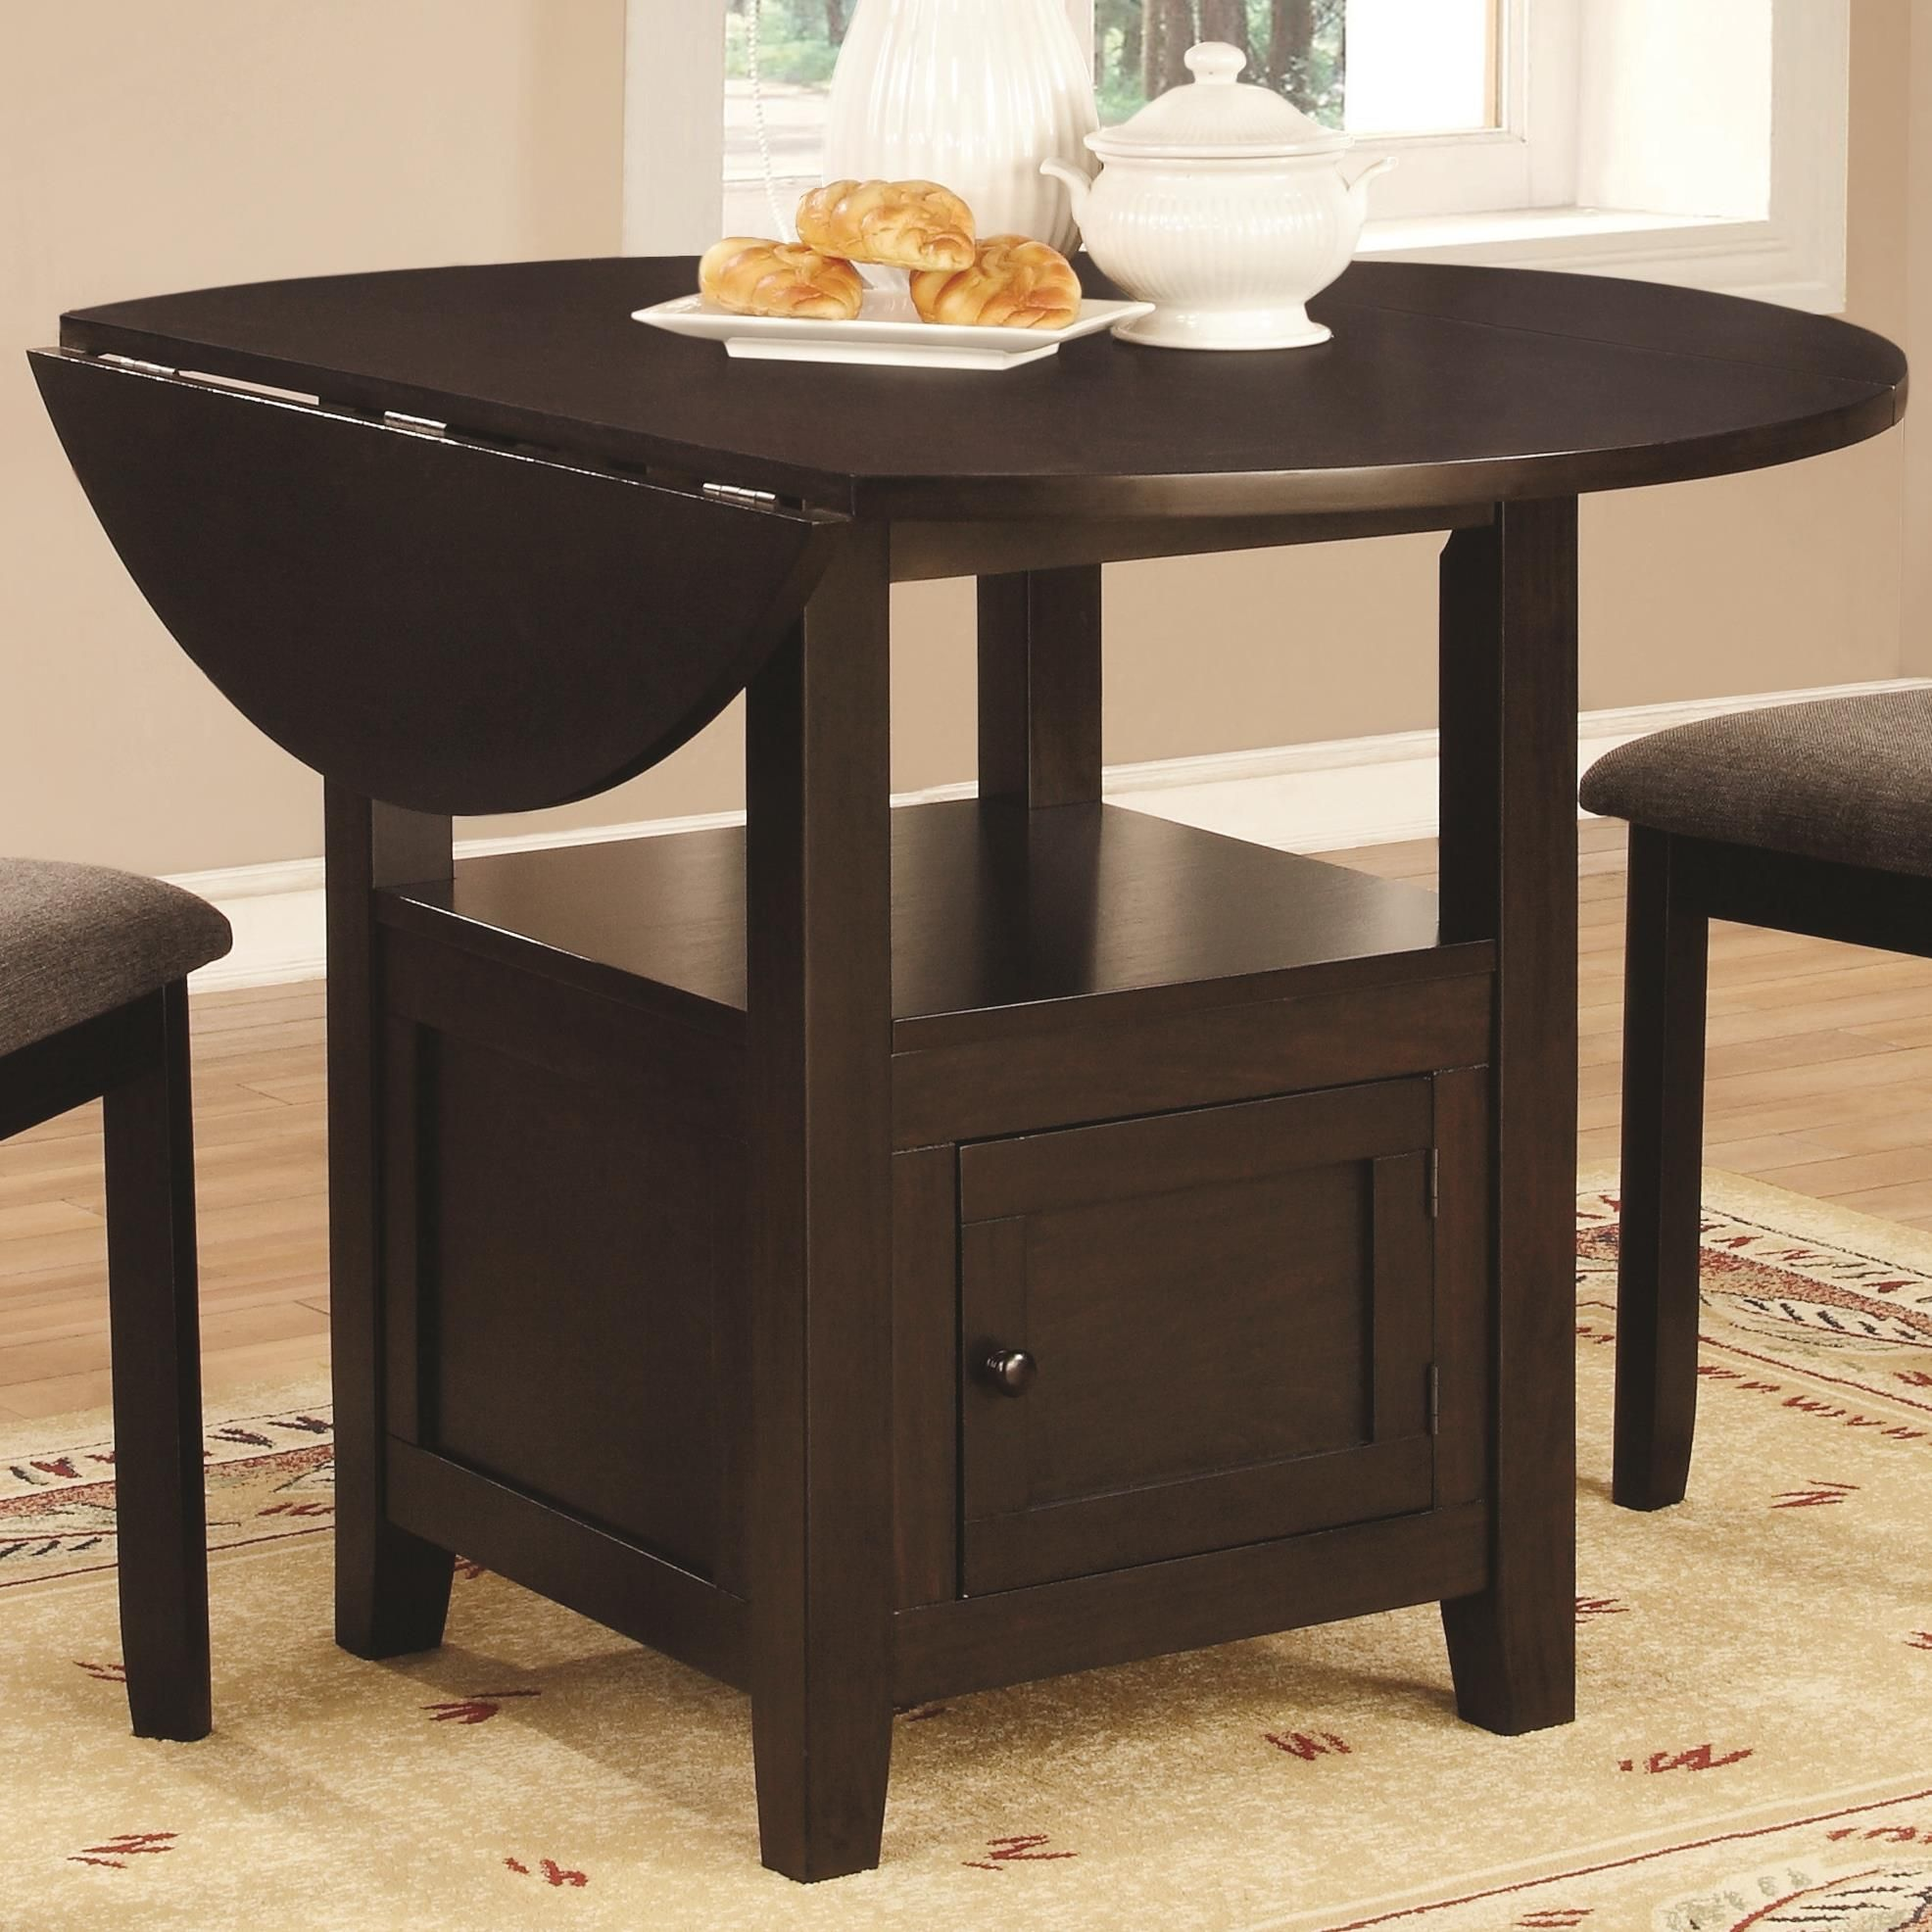 Coaster Stockton Round Drop Leaf Dining Table With Storage Coaster Fine Furnitur Counter Height Dining Table Dining Table With Storage Drop Leaf Dining Table